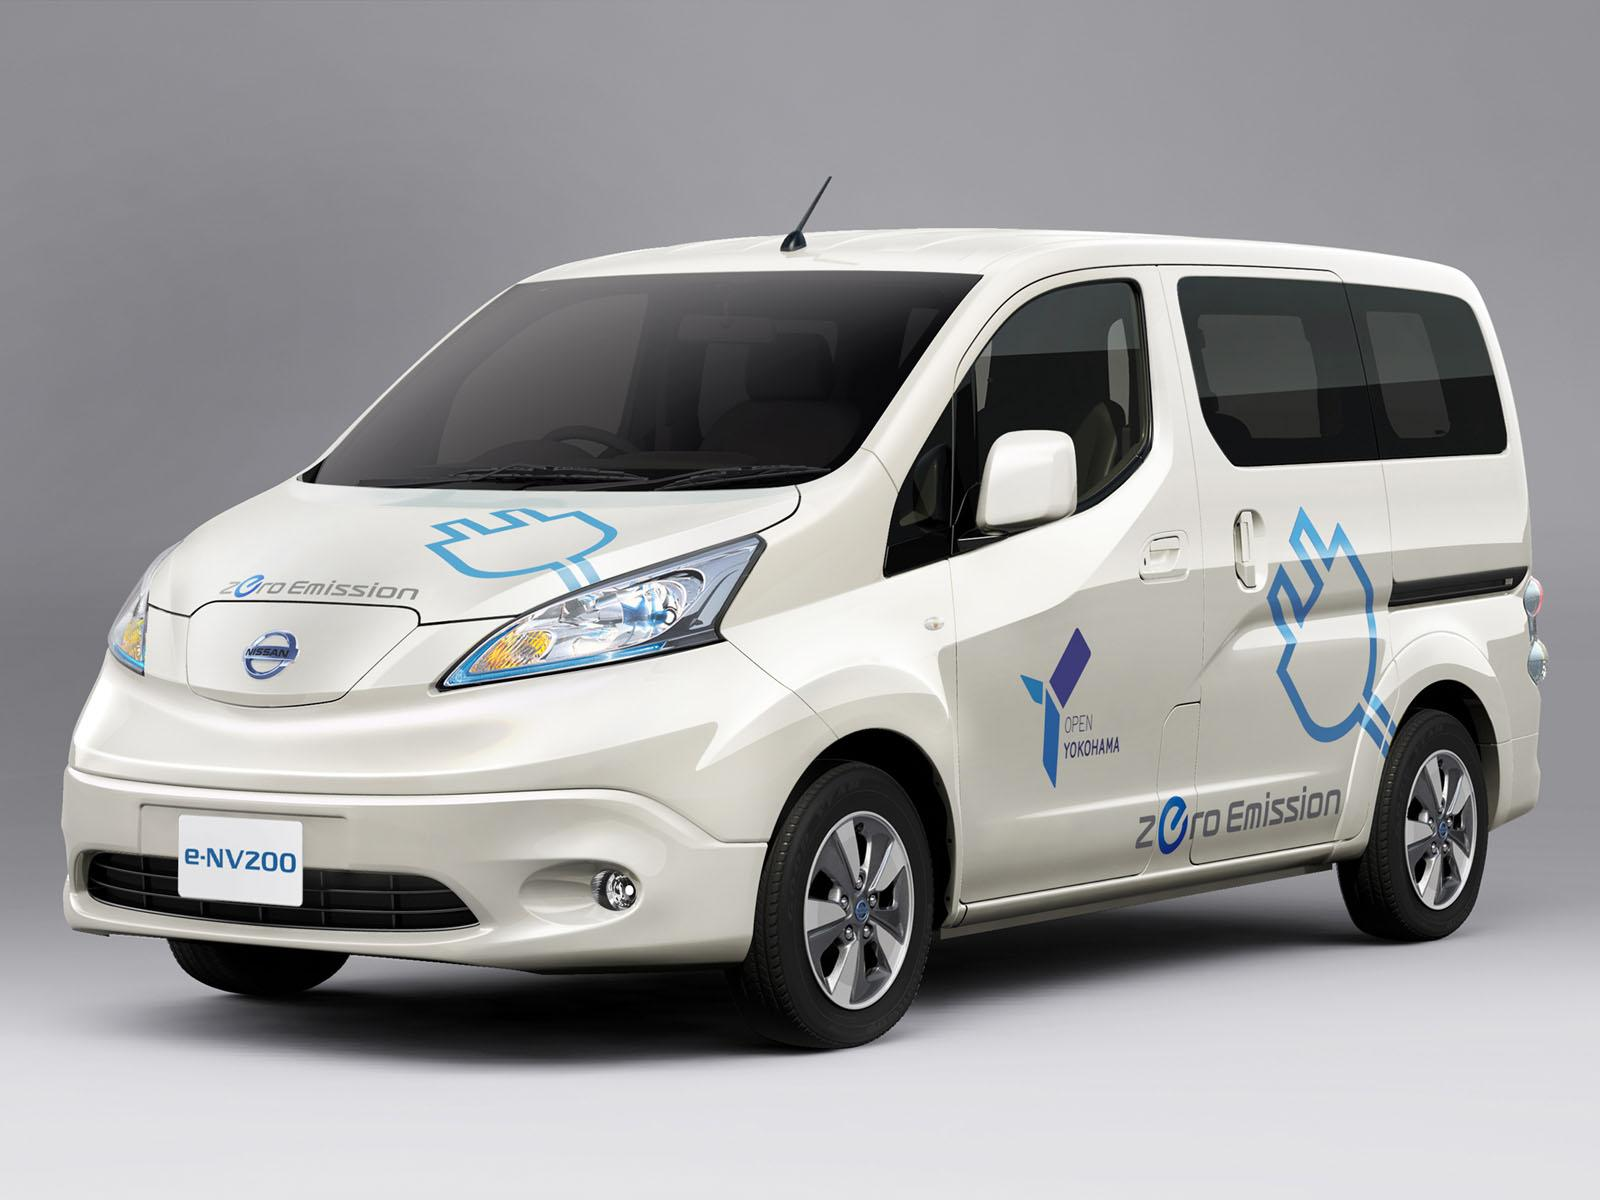 2014 Nissan e-NV200 Previewed Ahead of Tokyo Debut